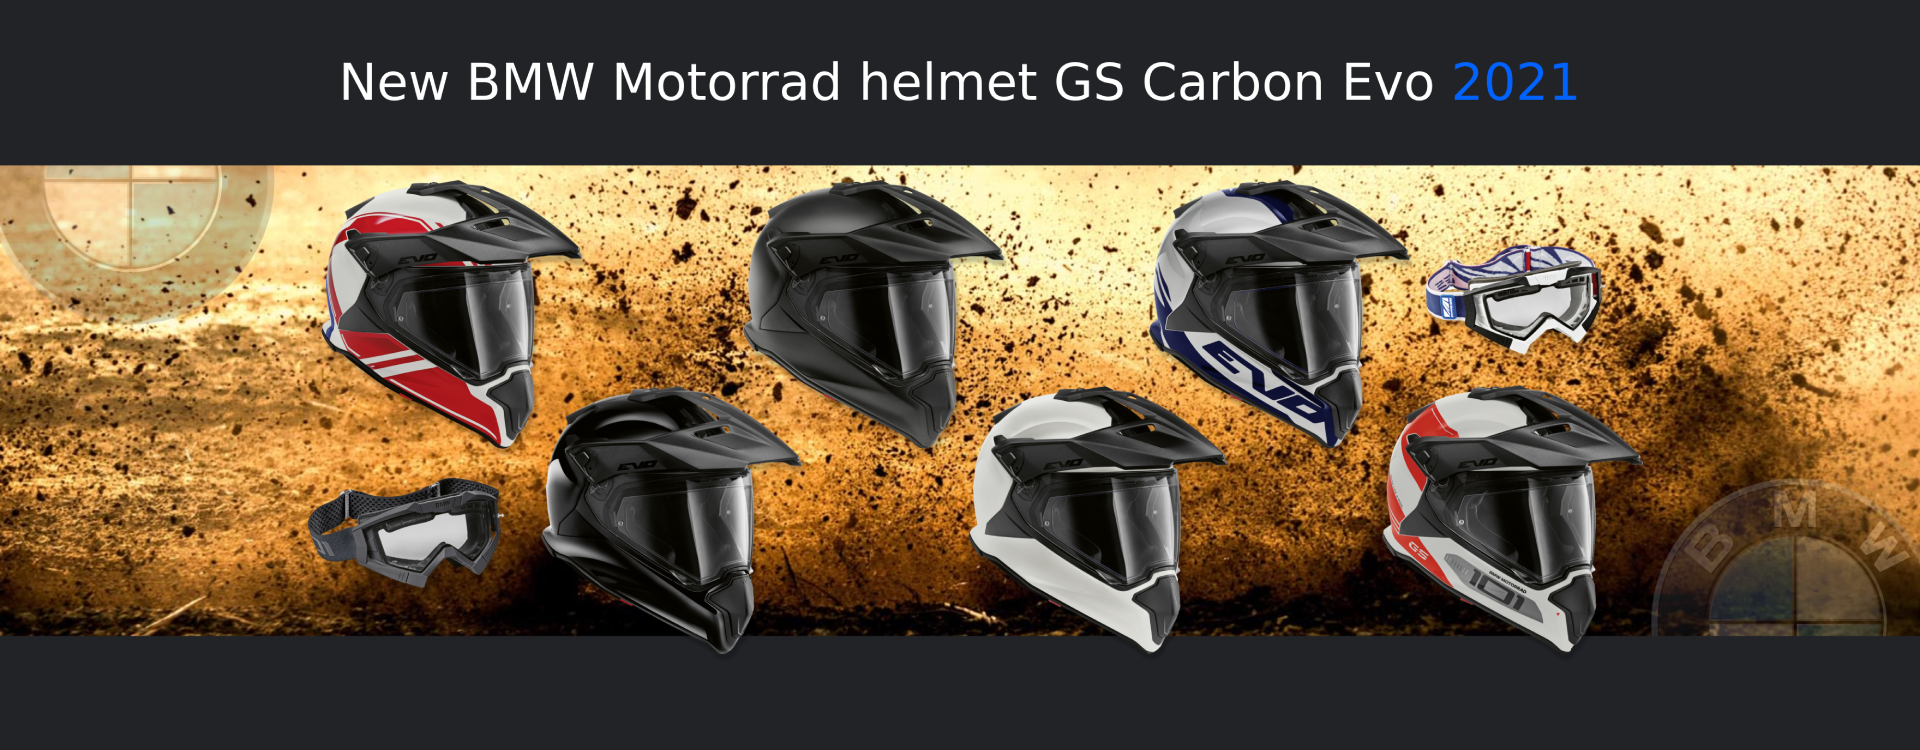 New Helmets GS Carbon EVO 2021